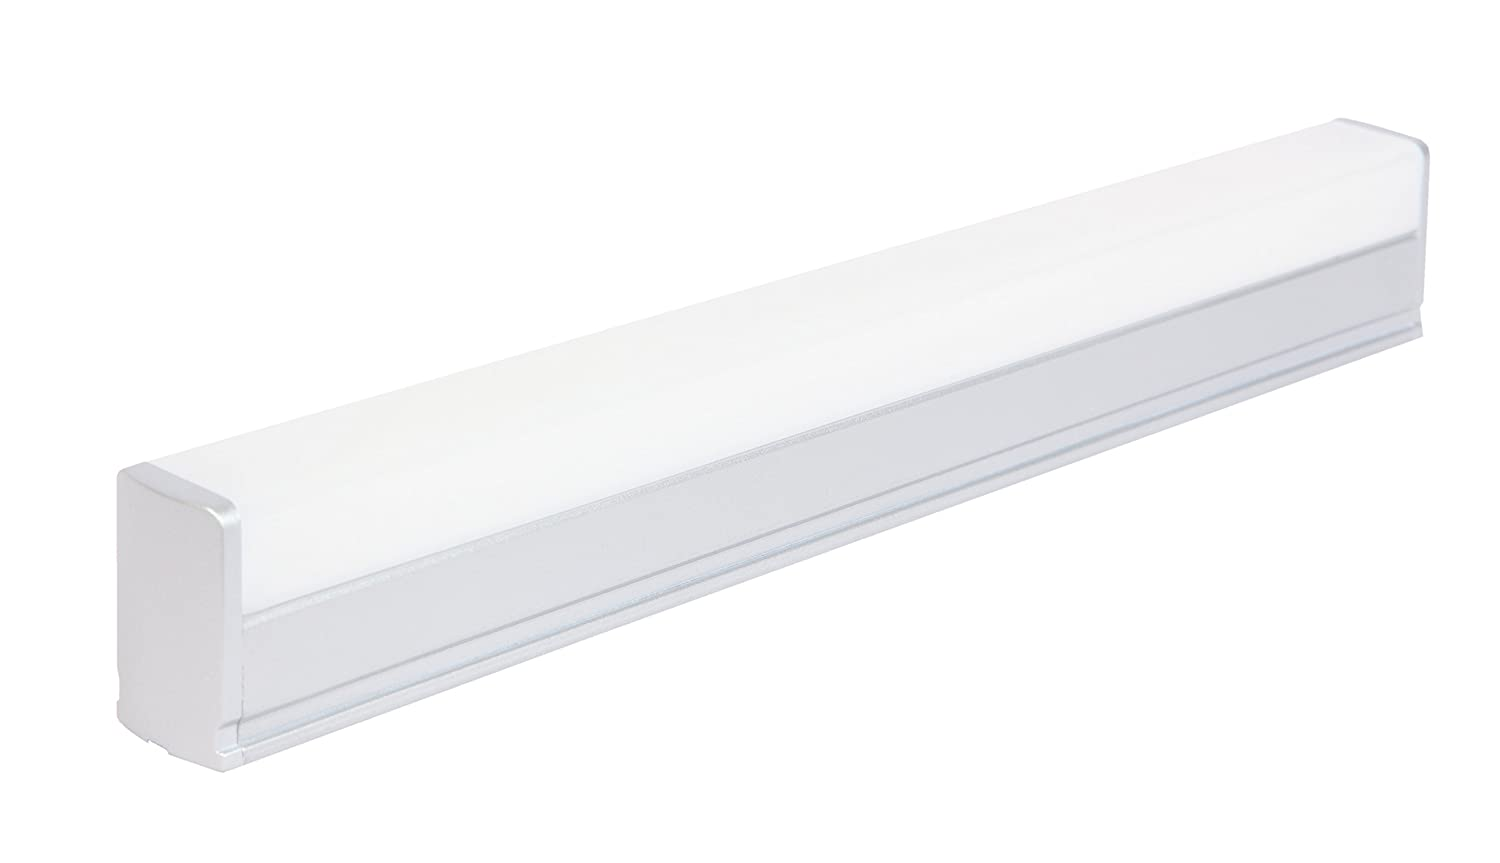 buy crompton eco smart linea watt led tube light (cool day  - buy crompton eco smart linea watt led tube light (cool day light) onlineat low prices in india  amazonin